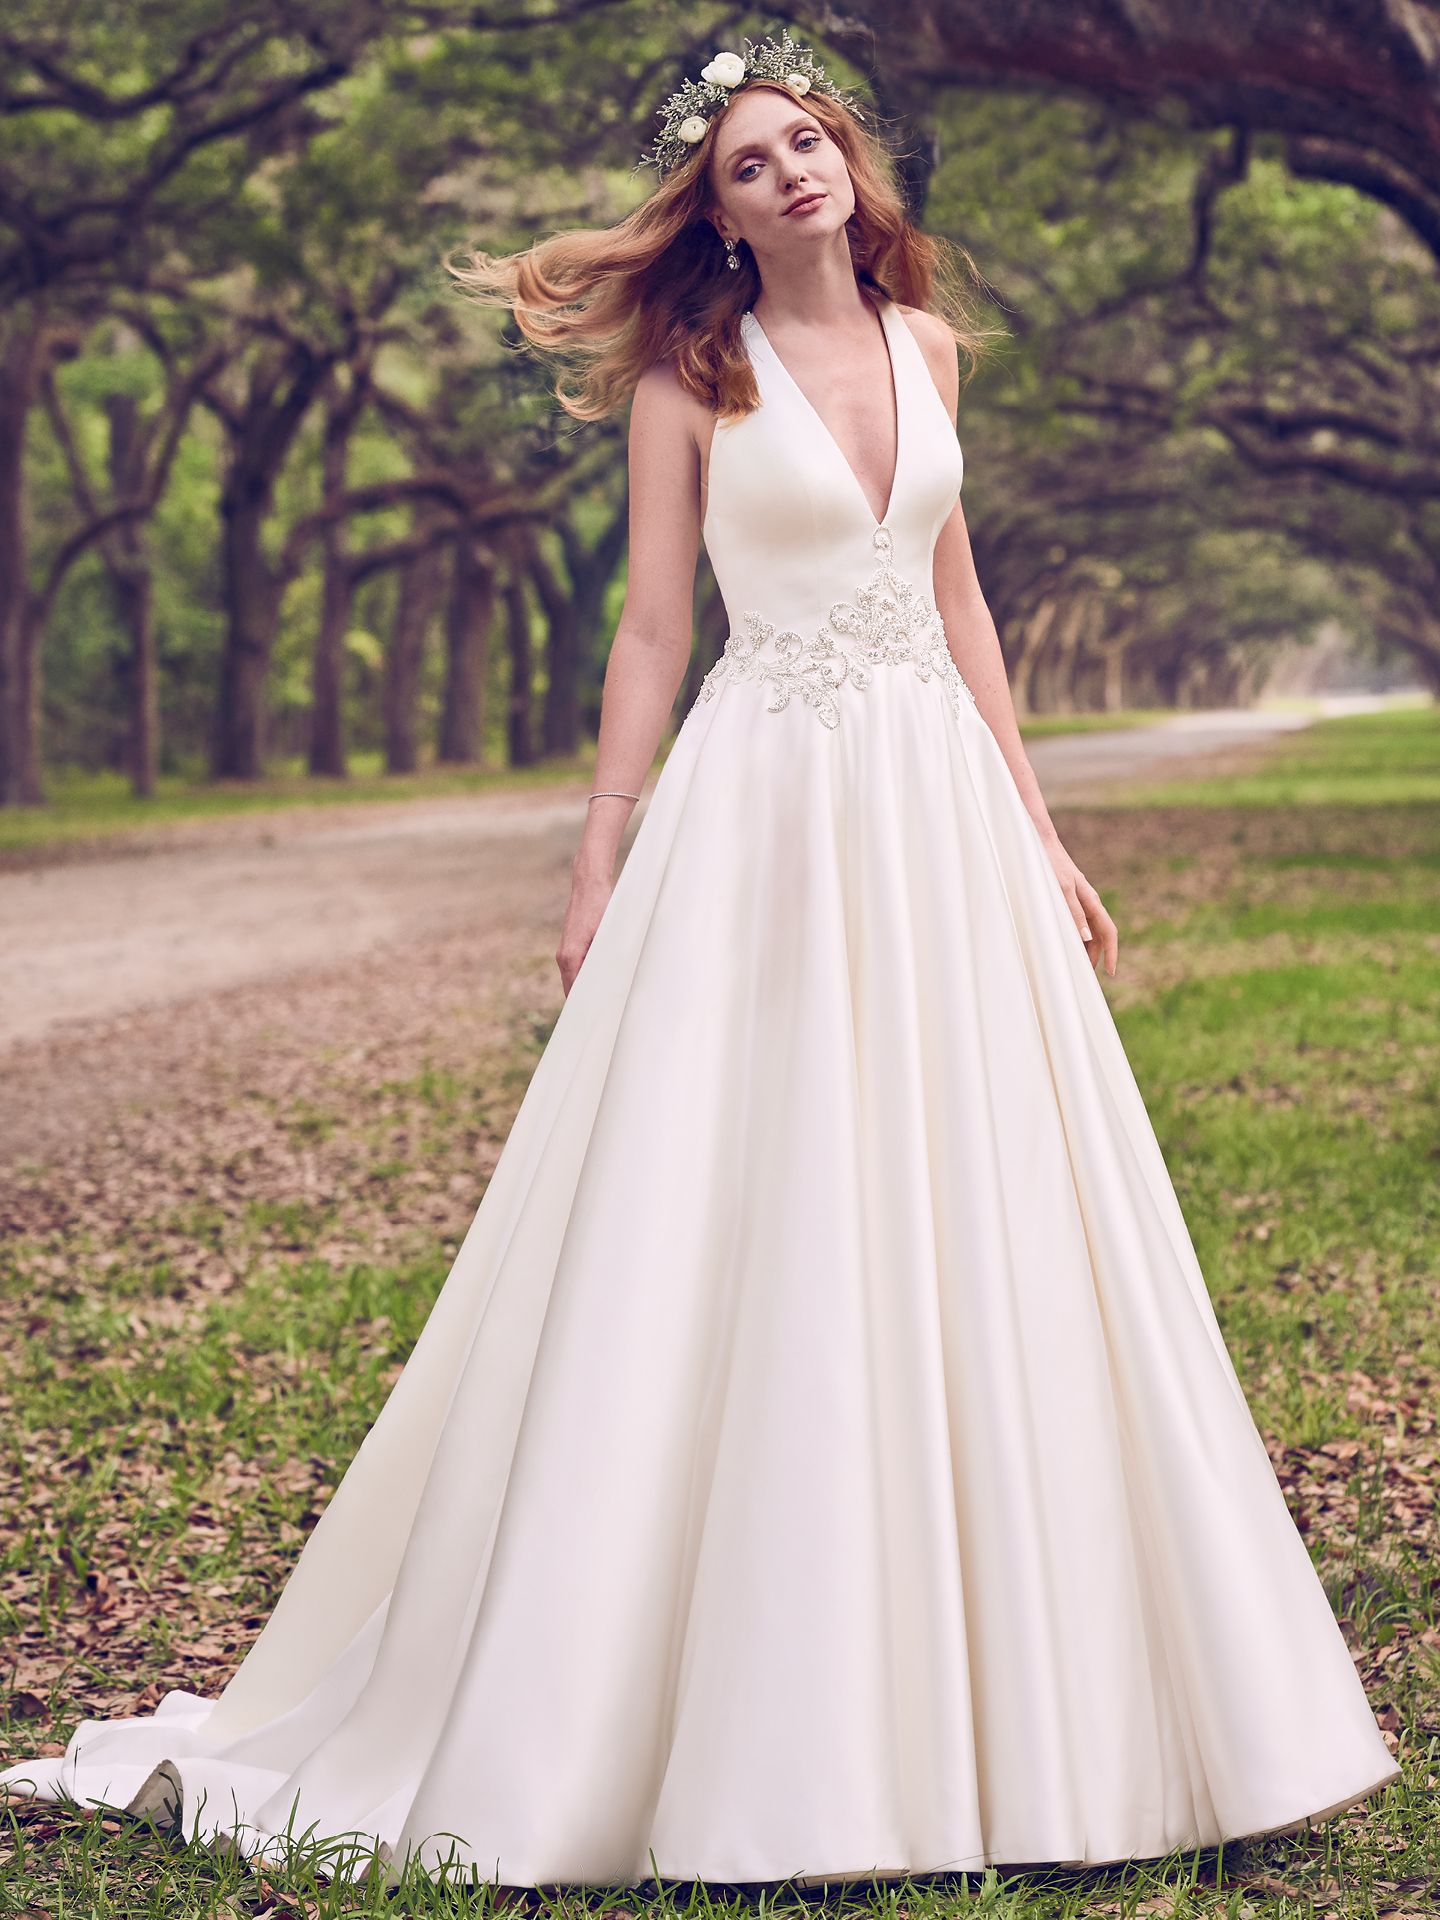 Famous Weddings Throughout History - For a formal and romantic wedding day look, try our Corianne by Maggie Sottero